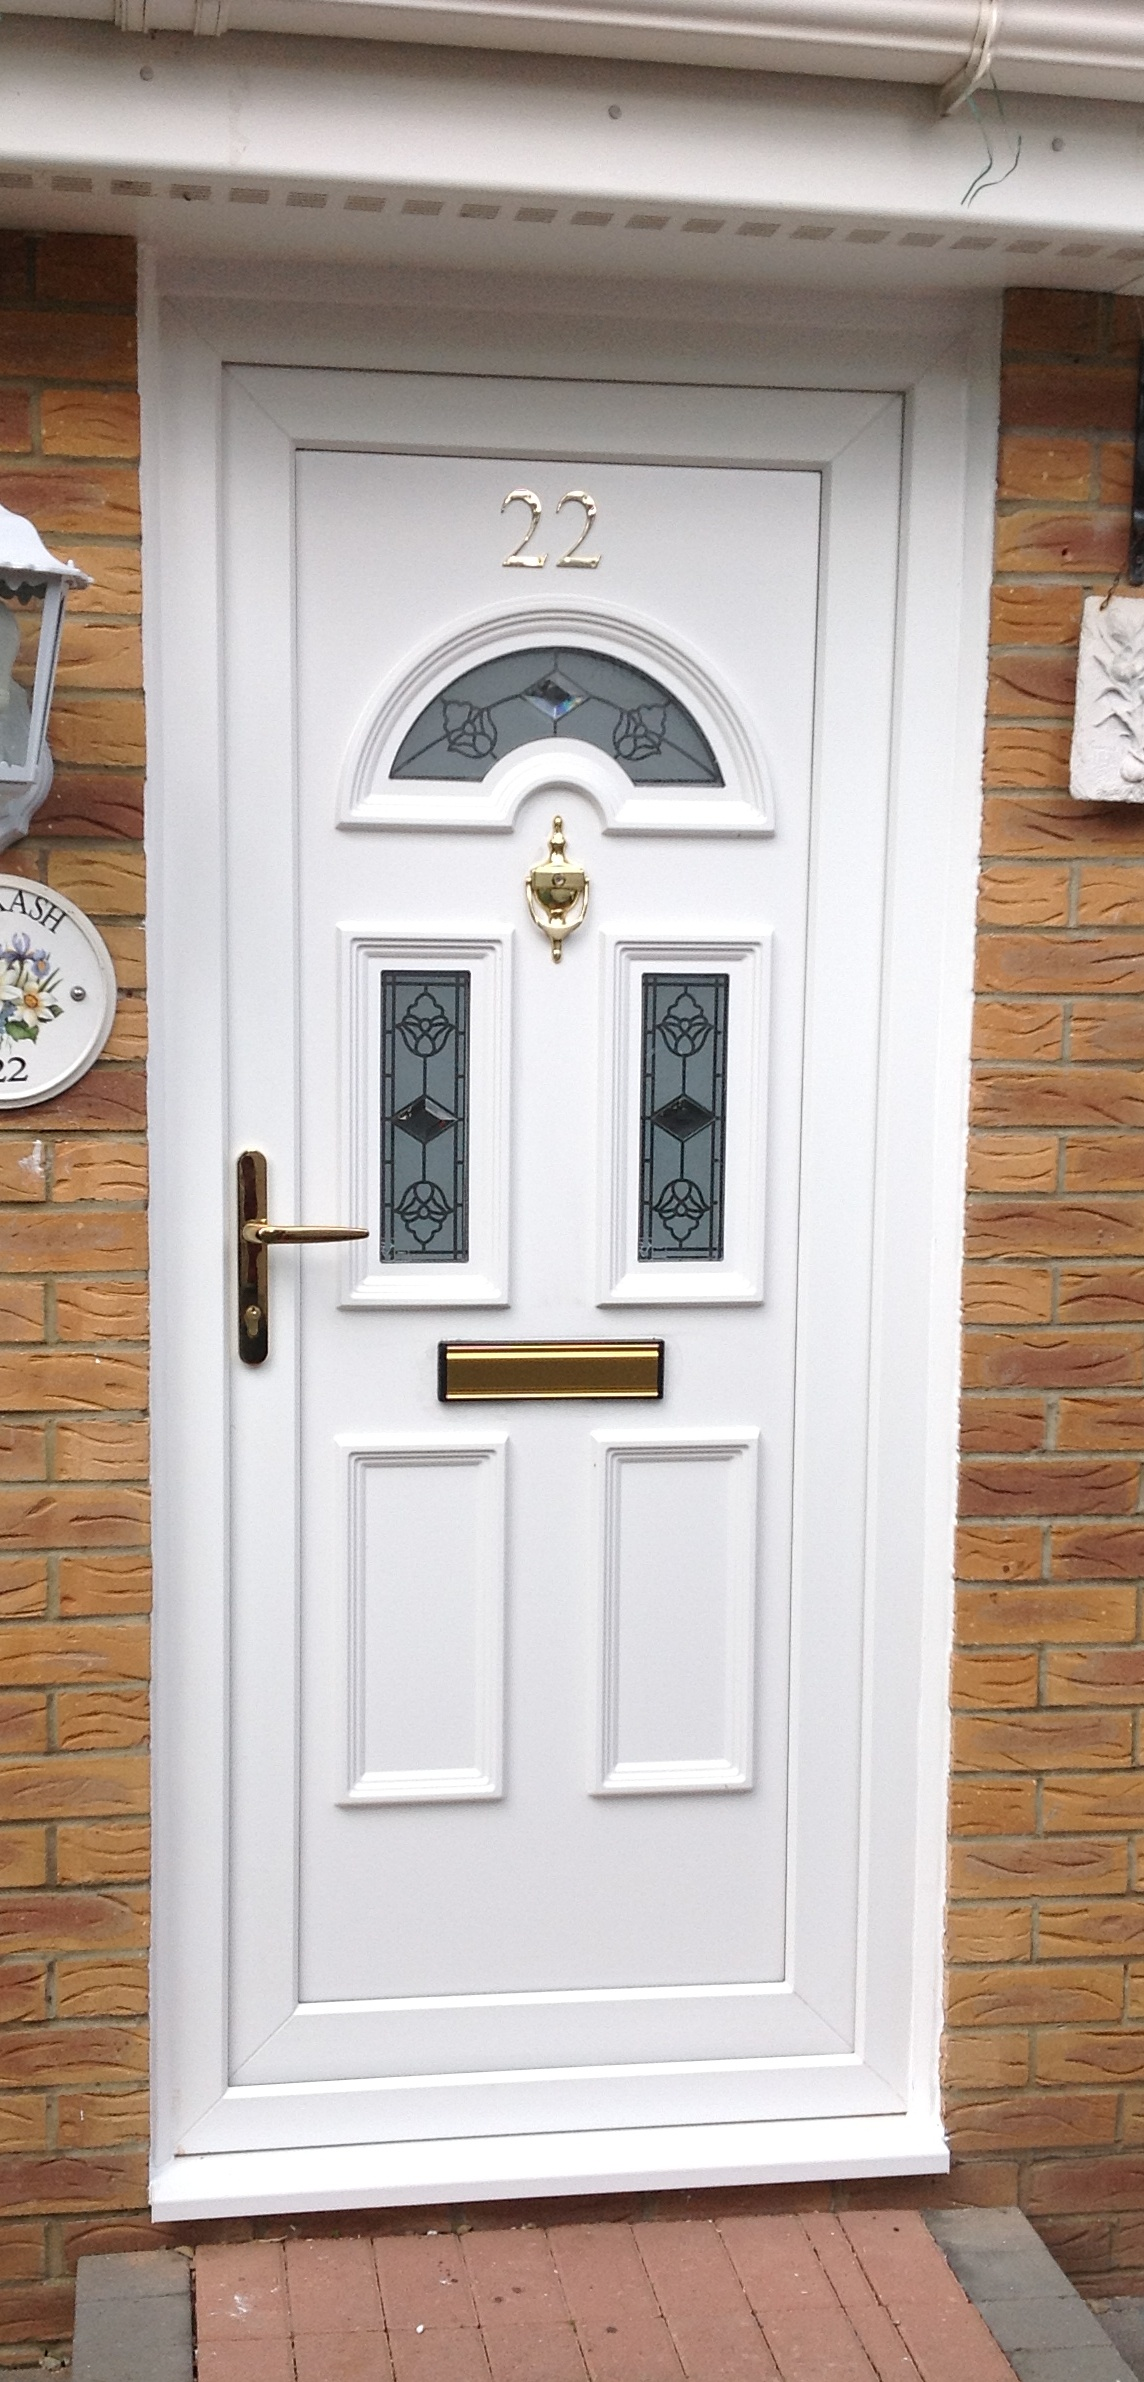 Personalising Your Upvc Door